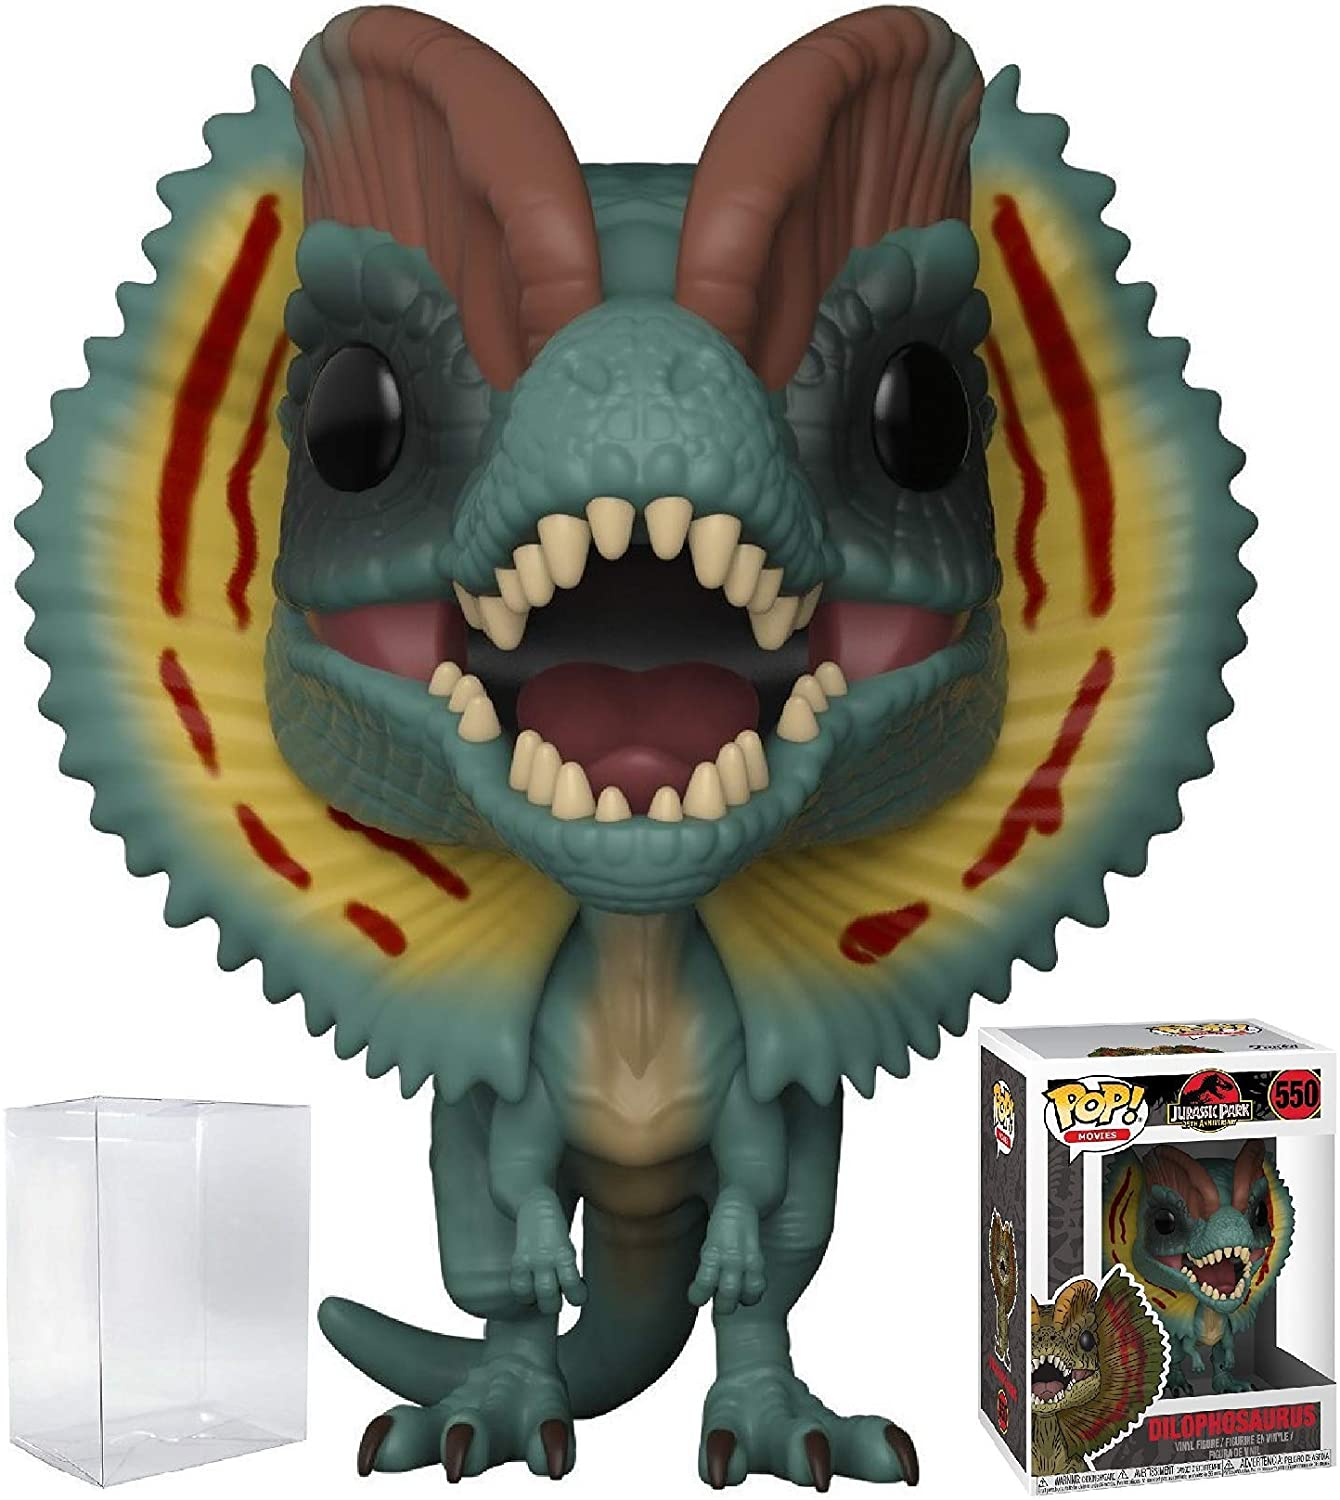 Funko Pop! Movies: Jurassic Park - Dilophosaurus Frill Open Vinyl Figure (Bundled with Pop Box Protector Case)